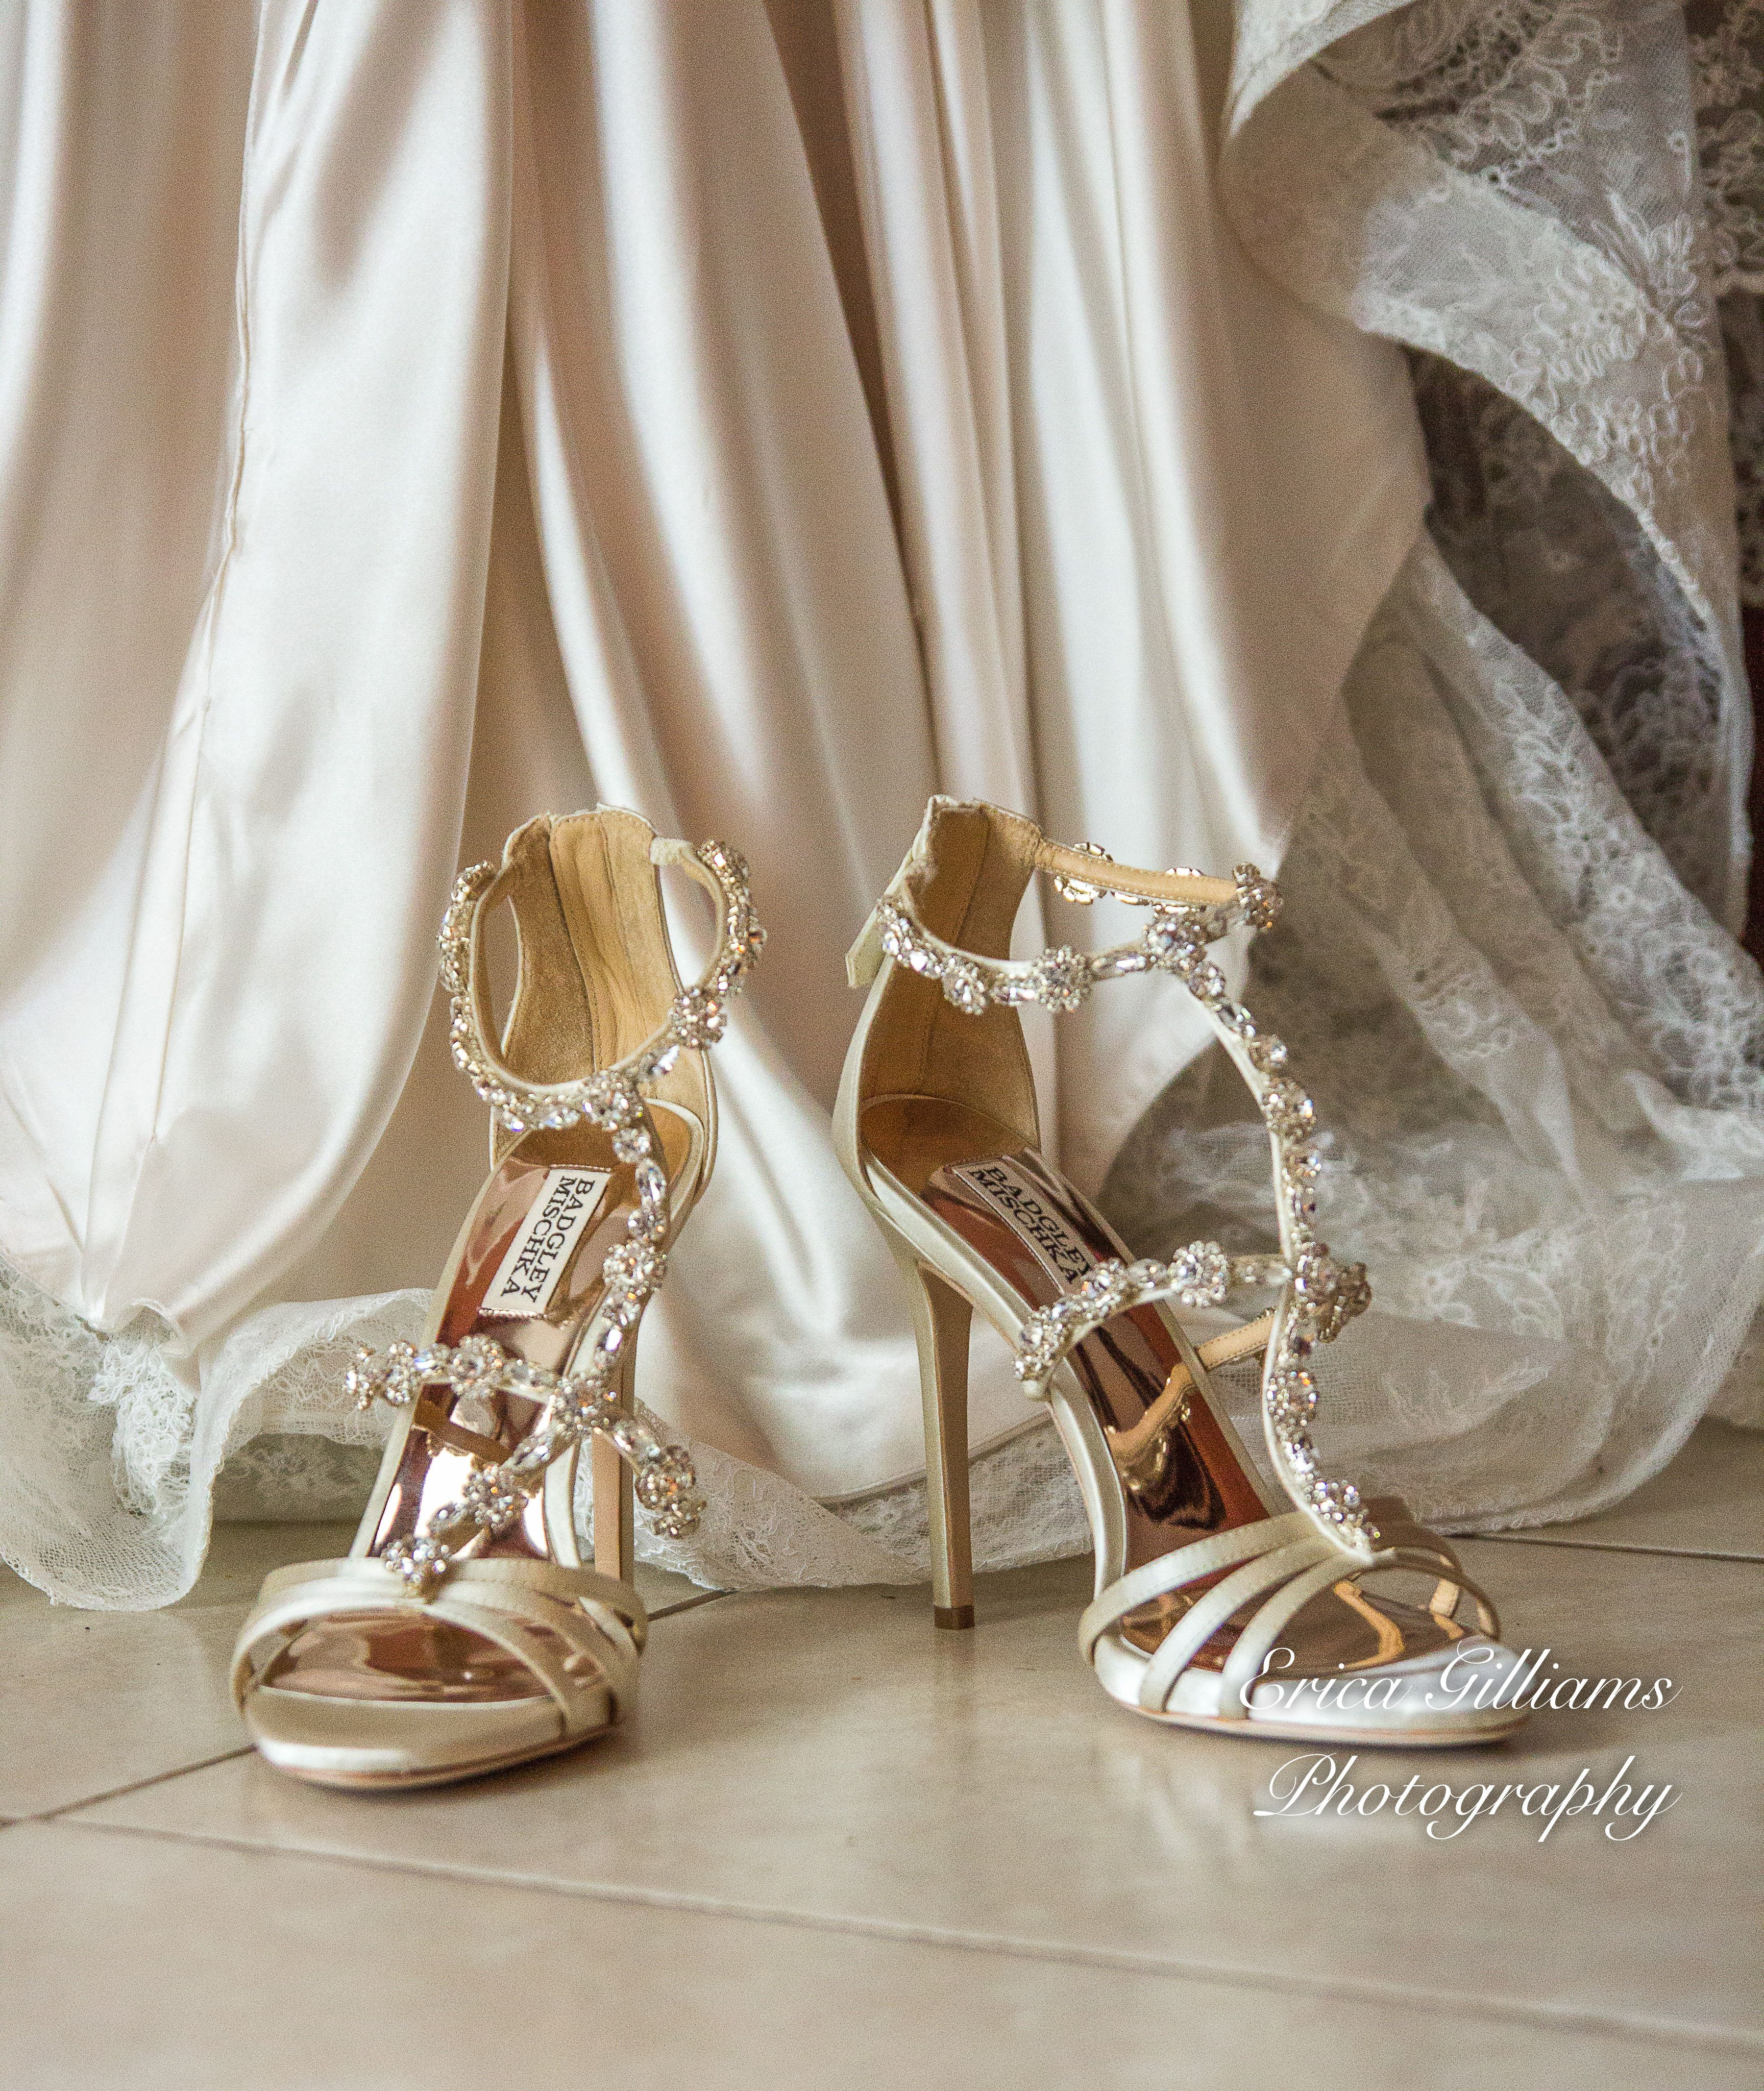 Wedding Dress and Shoes, Beautiful Cream and Gold Shoes. Crystal